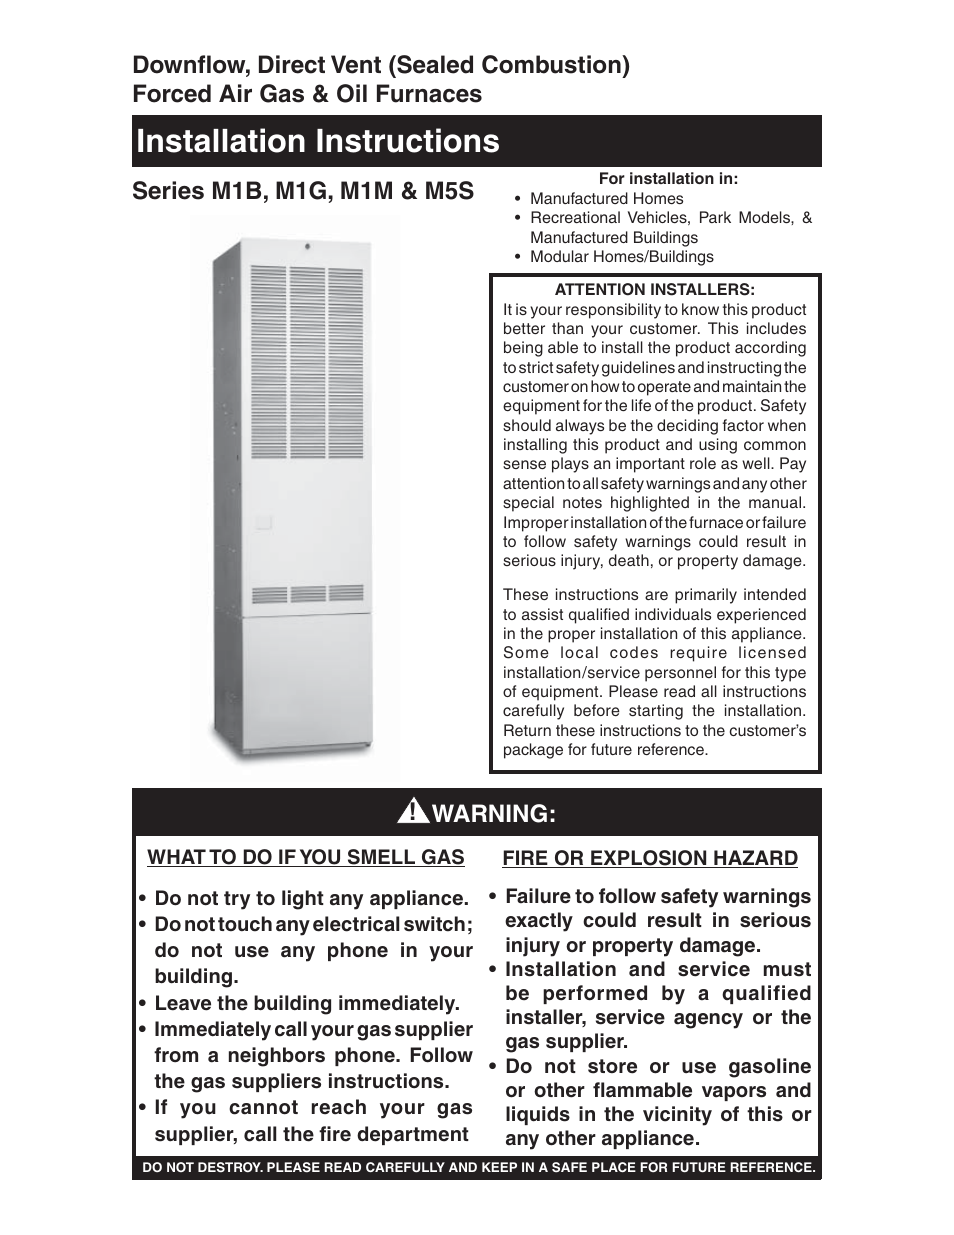 Nordyne downflow direct vent forced air gas oil furnaces series m1b nordyne downflow direct vent forced air gas oil furnaces series m1b user manual 40 pages also for downflow direct vent forced air gas oil furnaces and publicscrutiny Choice Image